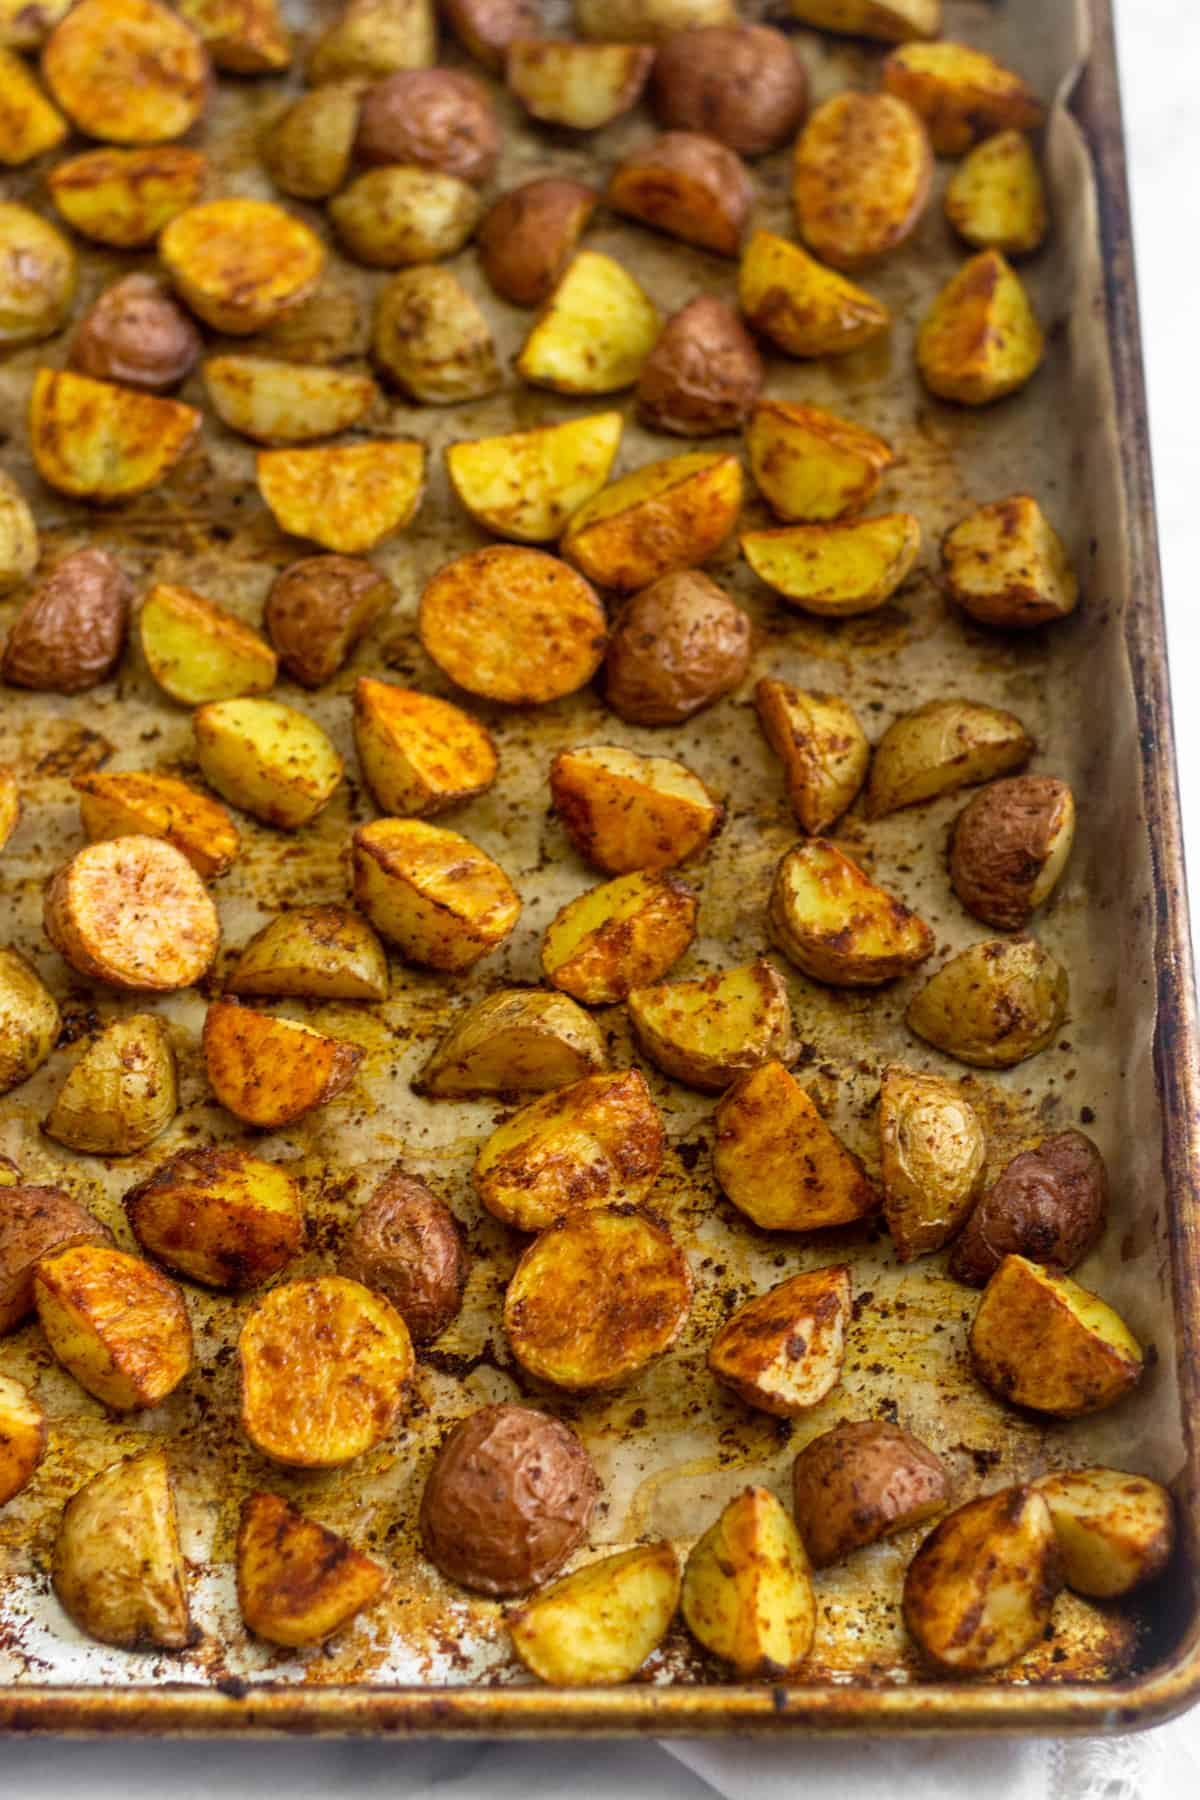 Large baking sheet filled with crispy roasted breakfast potatoes right out of the oven